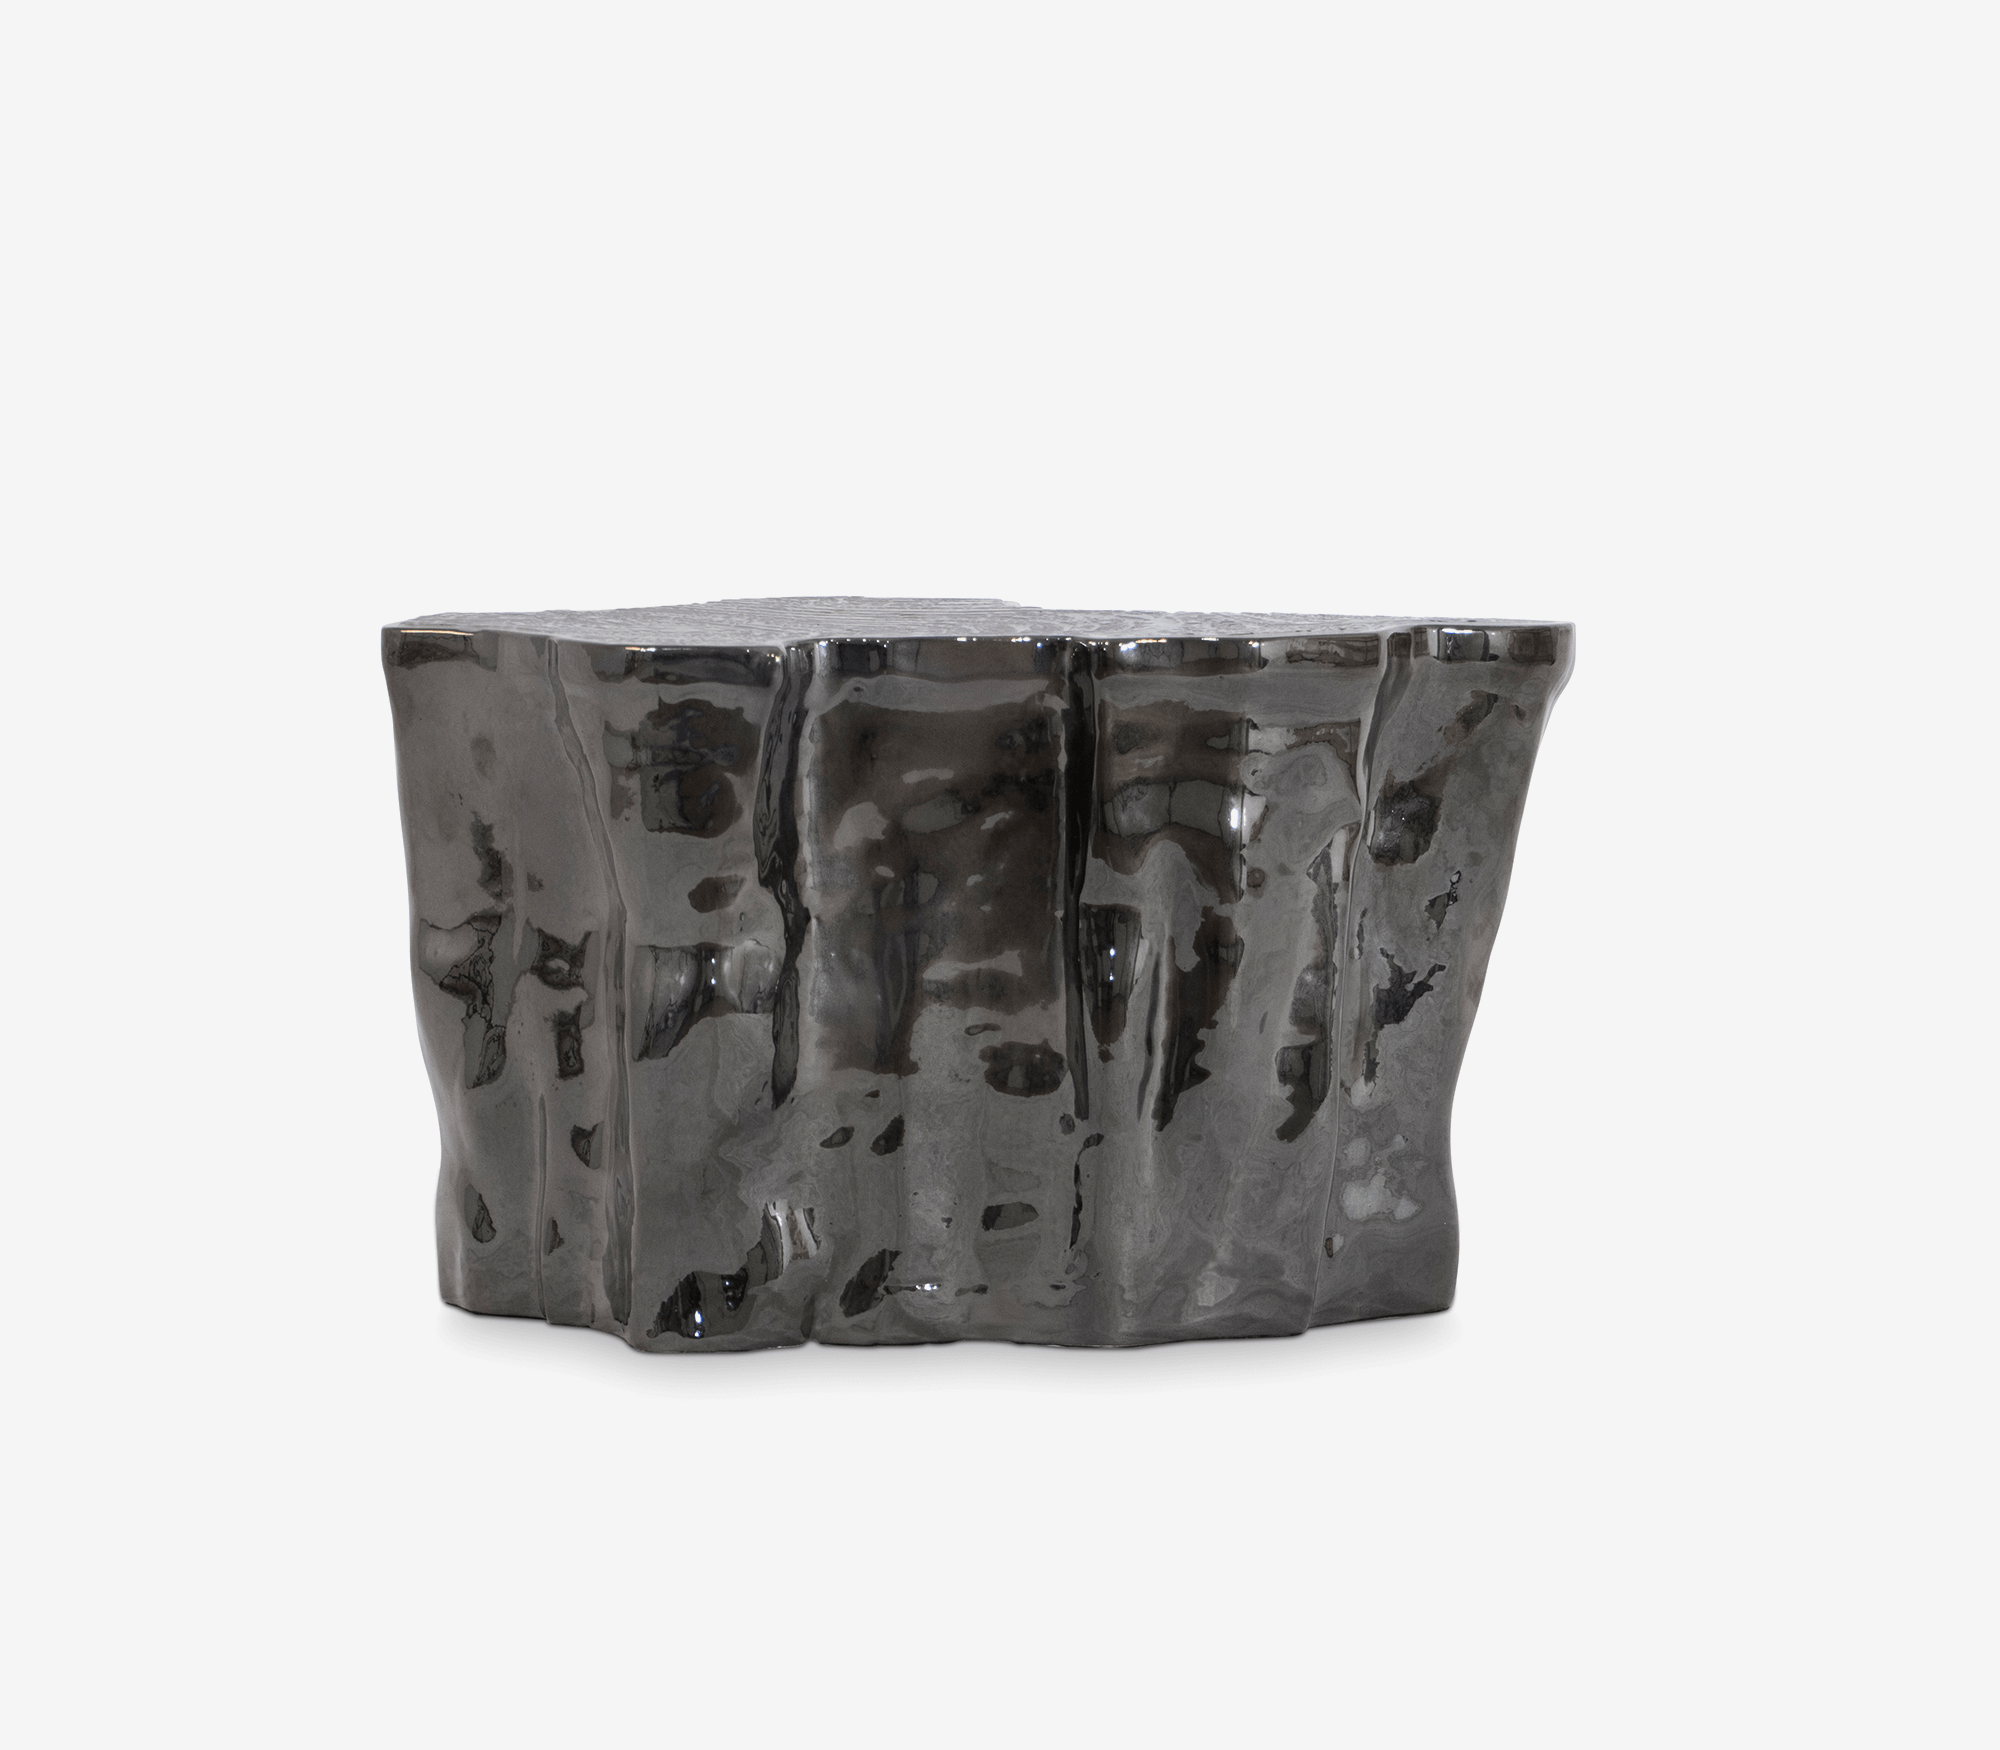 Eden Ceramic Black Side Table by Boca do Lobo